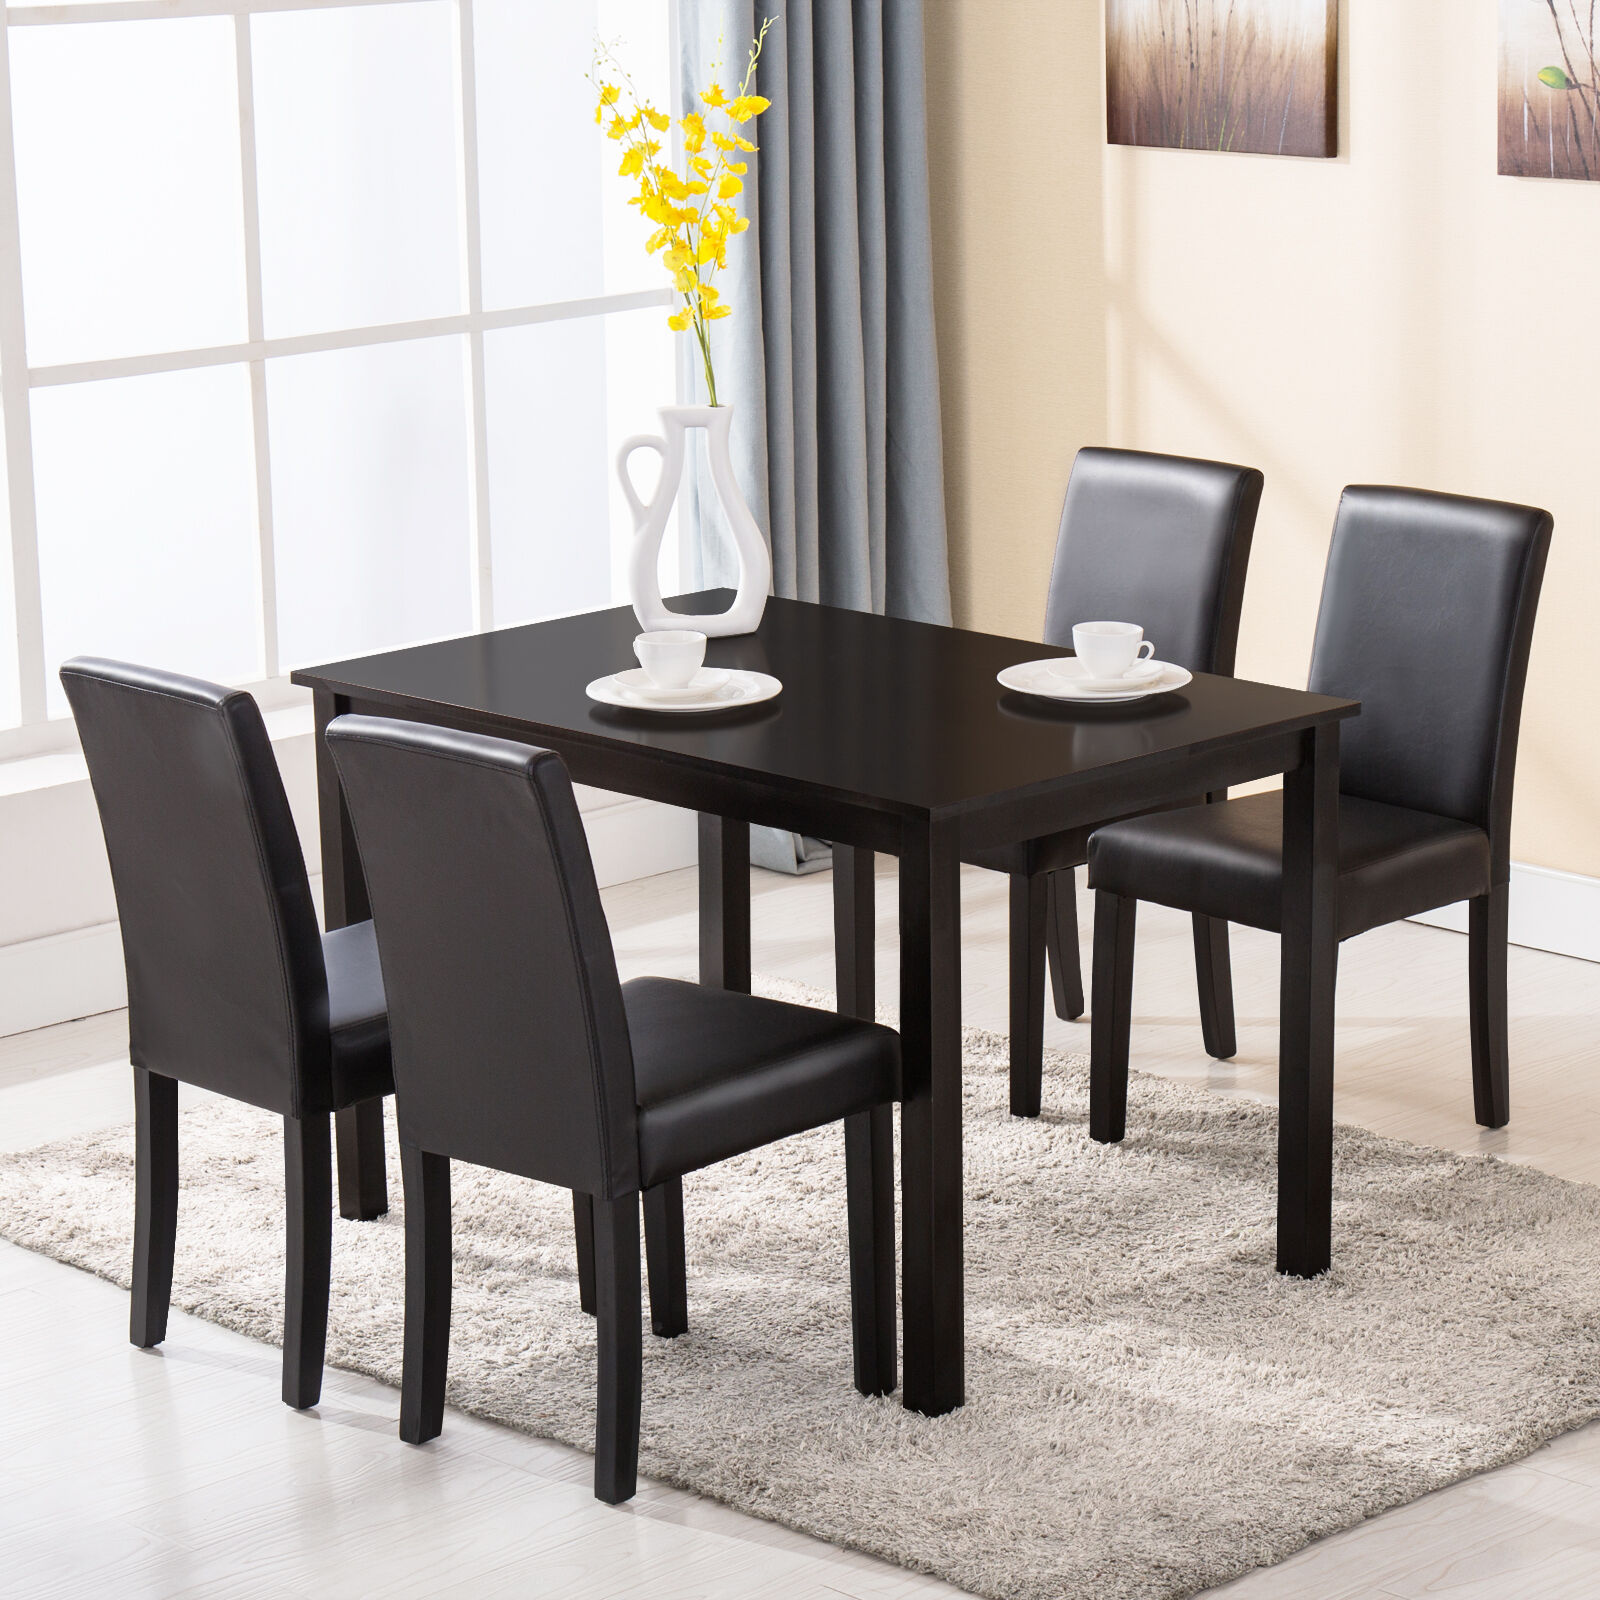 5 piece dining table set 4 chairs wood kitchen dinette for Kitchen dining room chairs